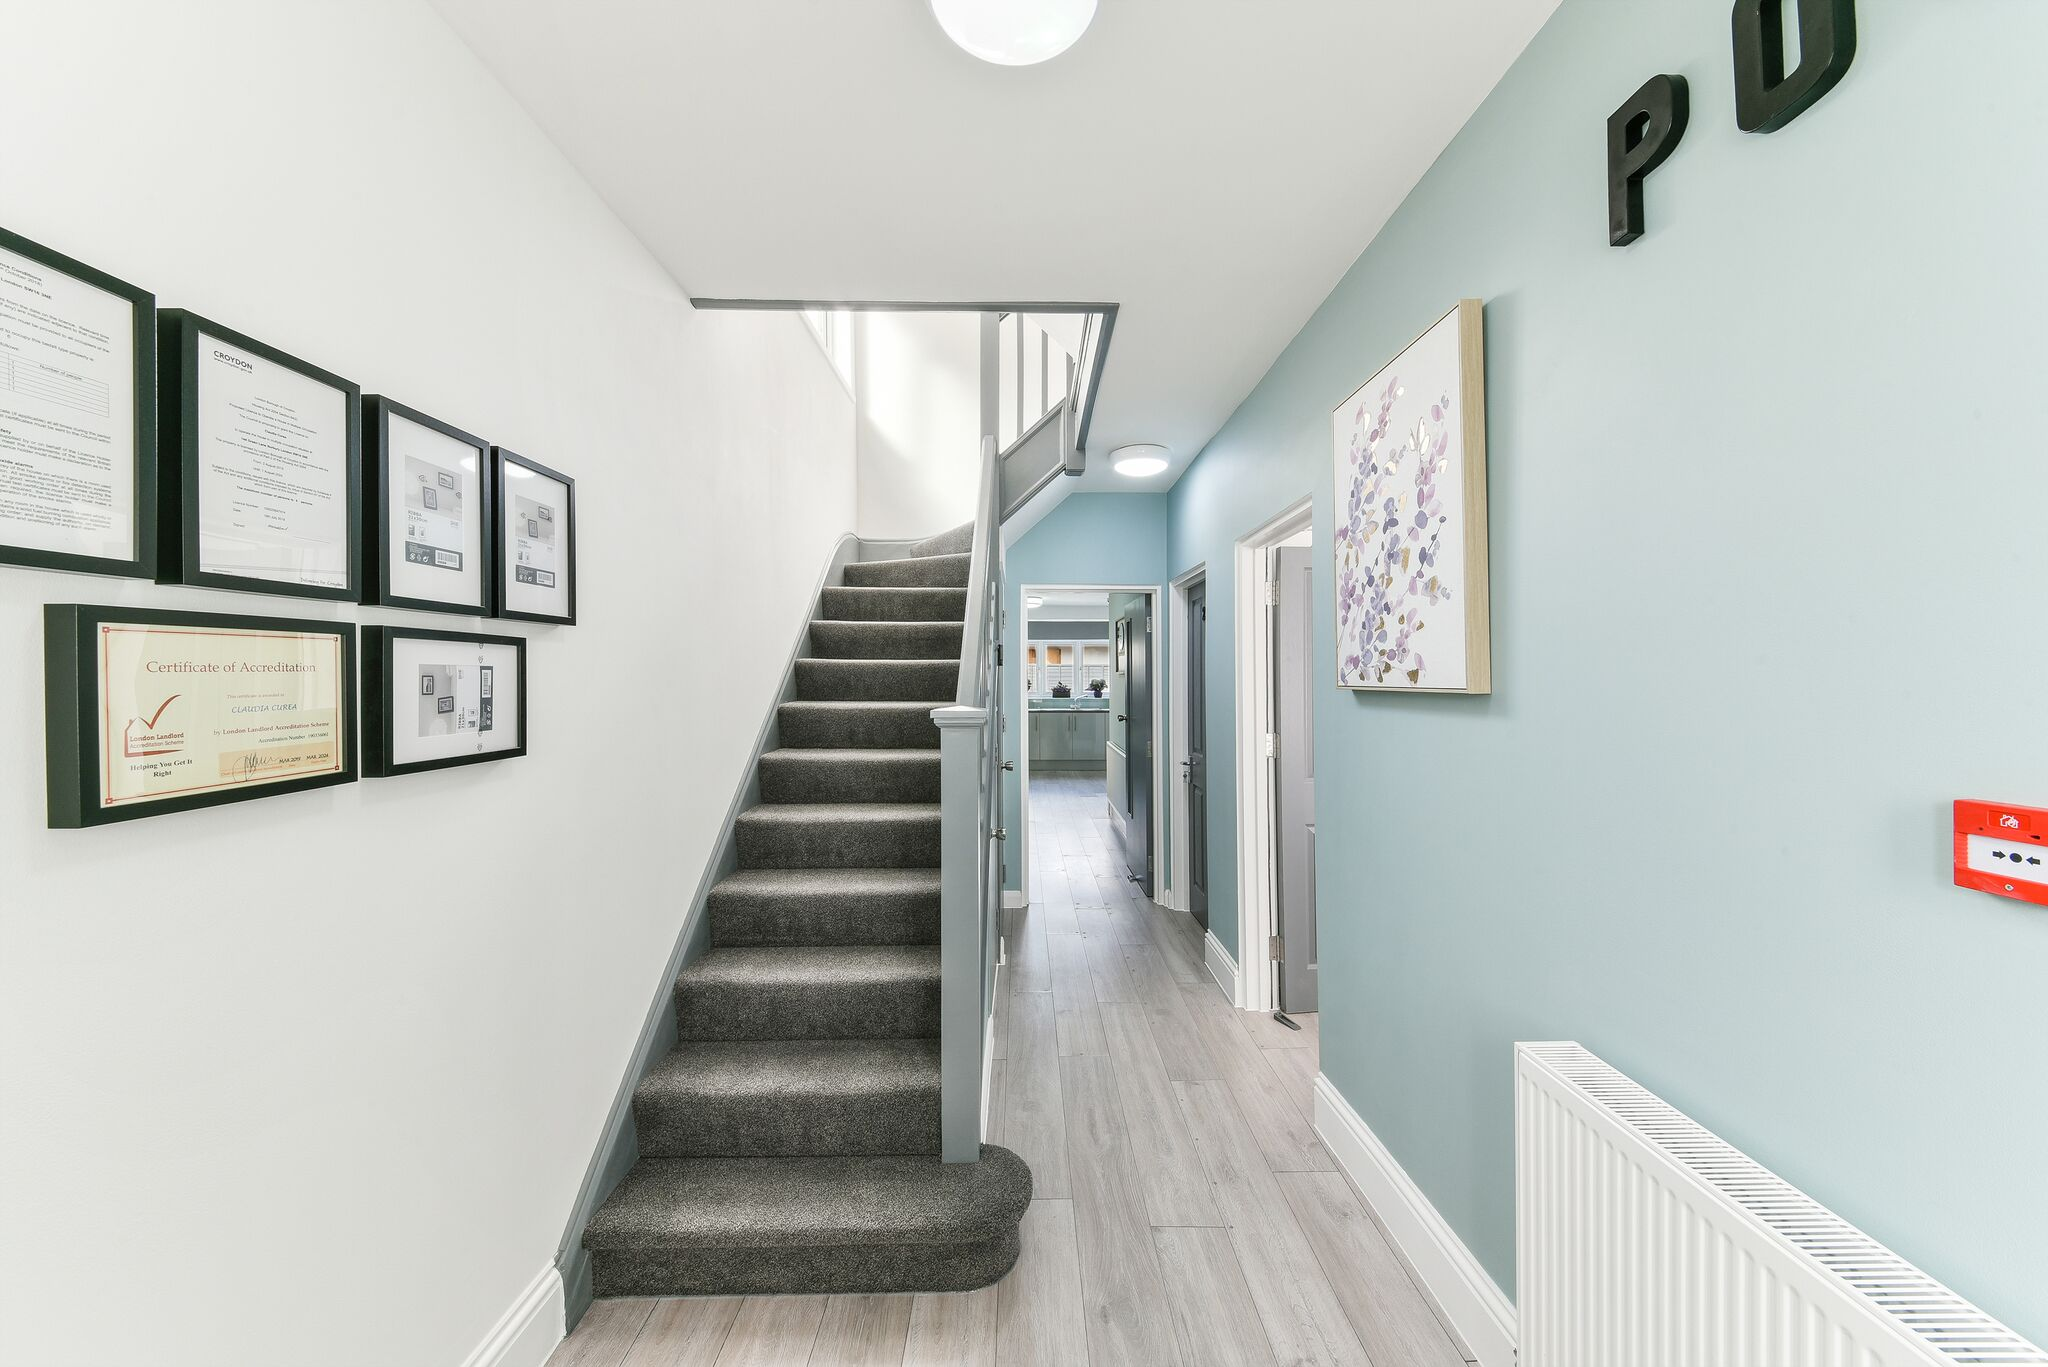 2 rooms in Norbury, London, SW16 3NE RoomsLocal image